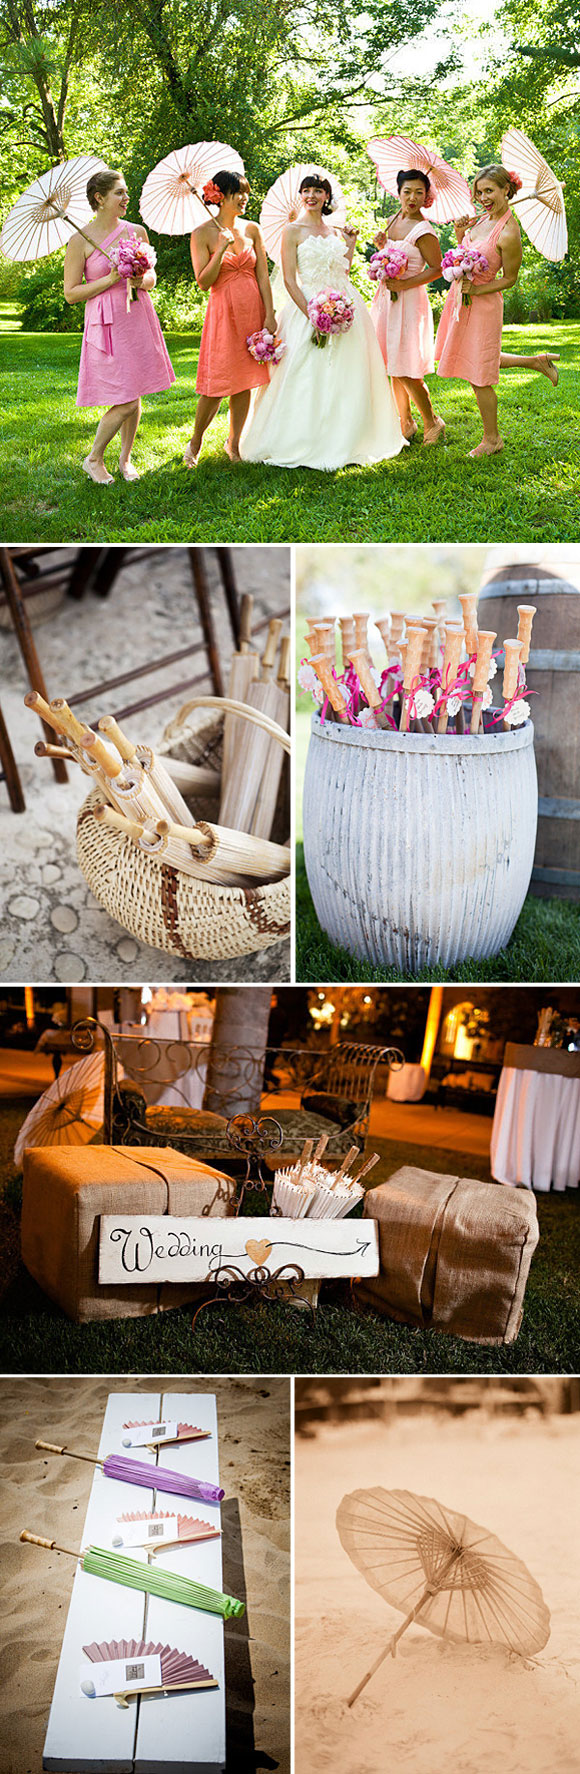 Ideas para decorar con parasoles en tu boda